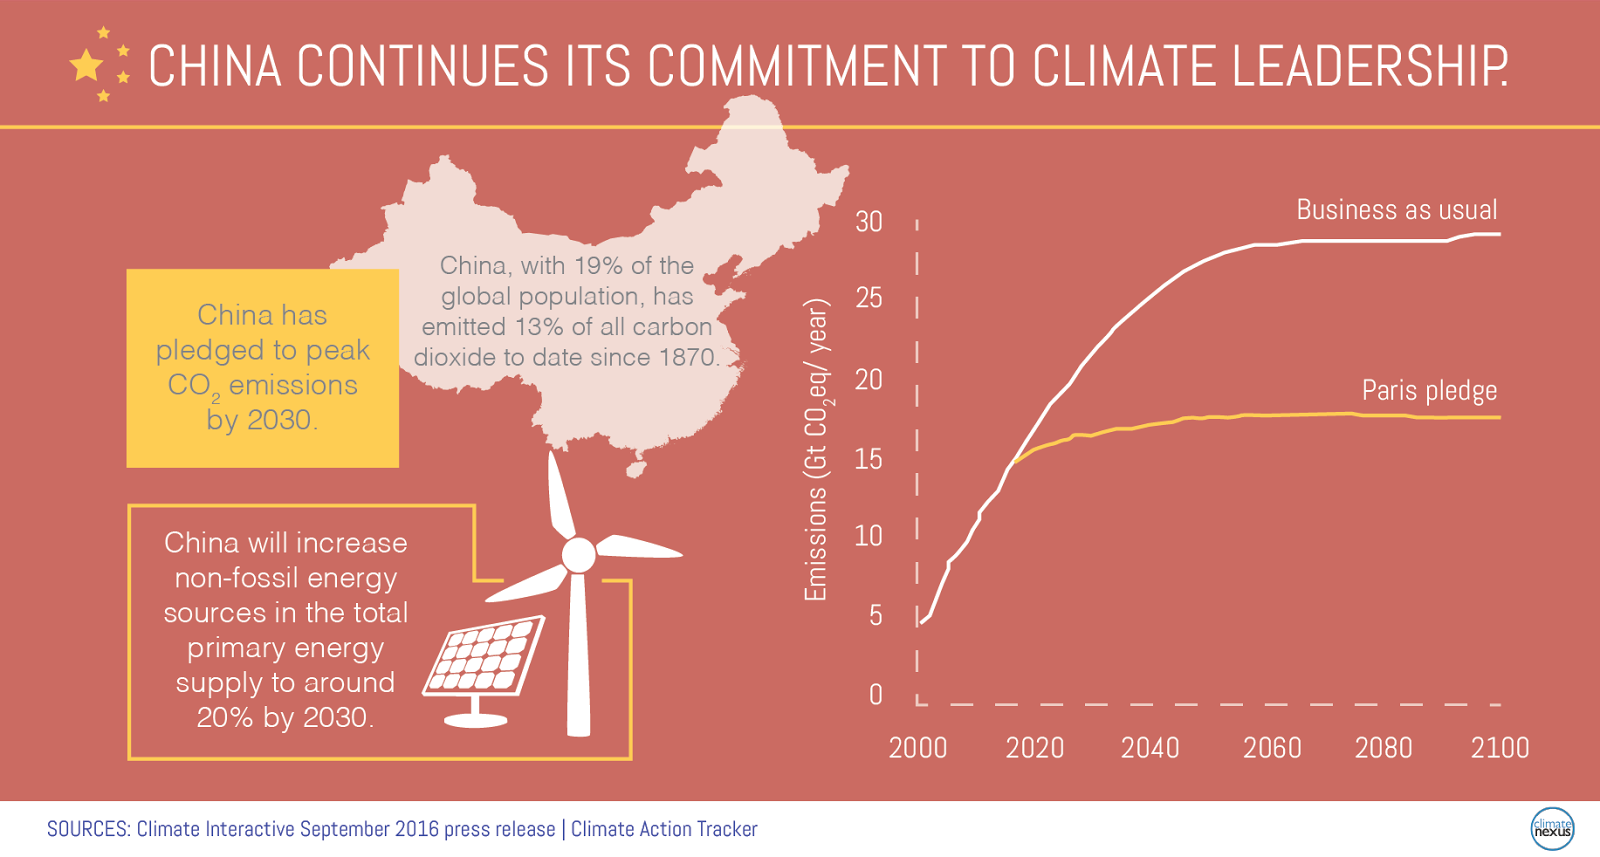 China's Climate and Energy Policy